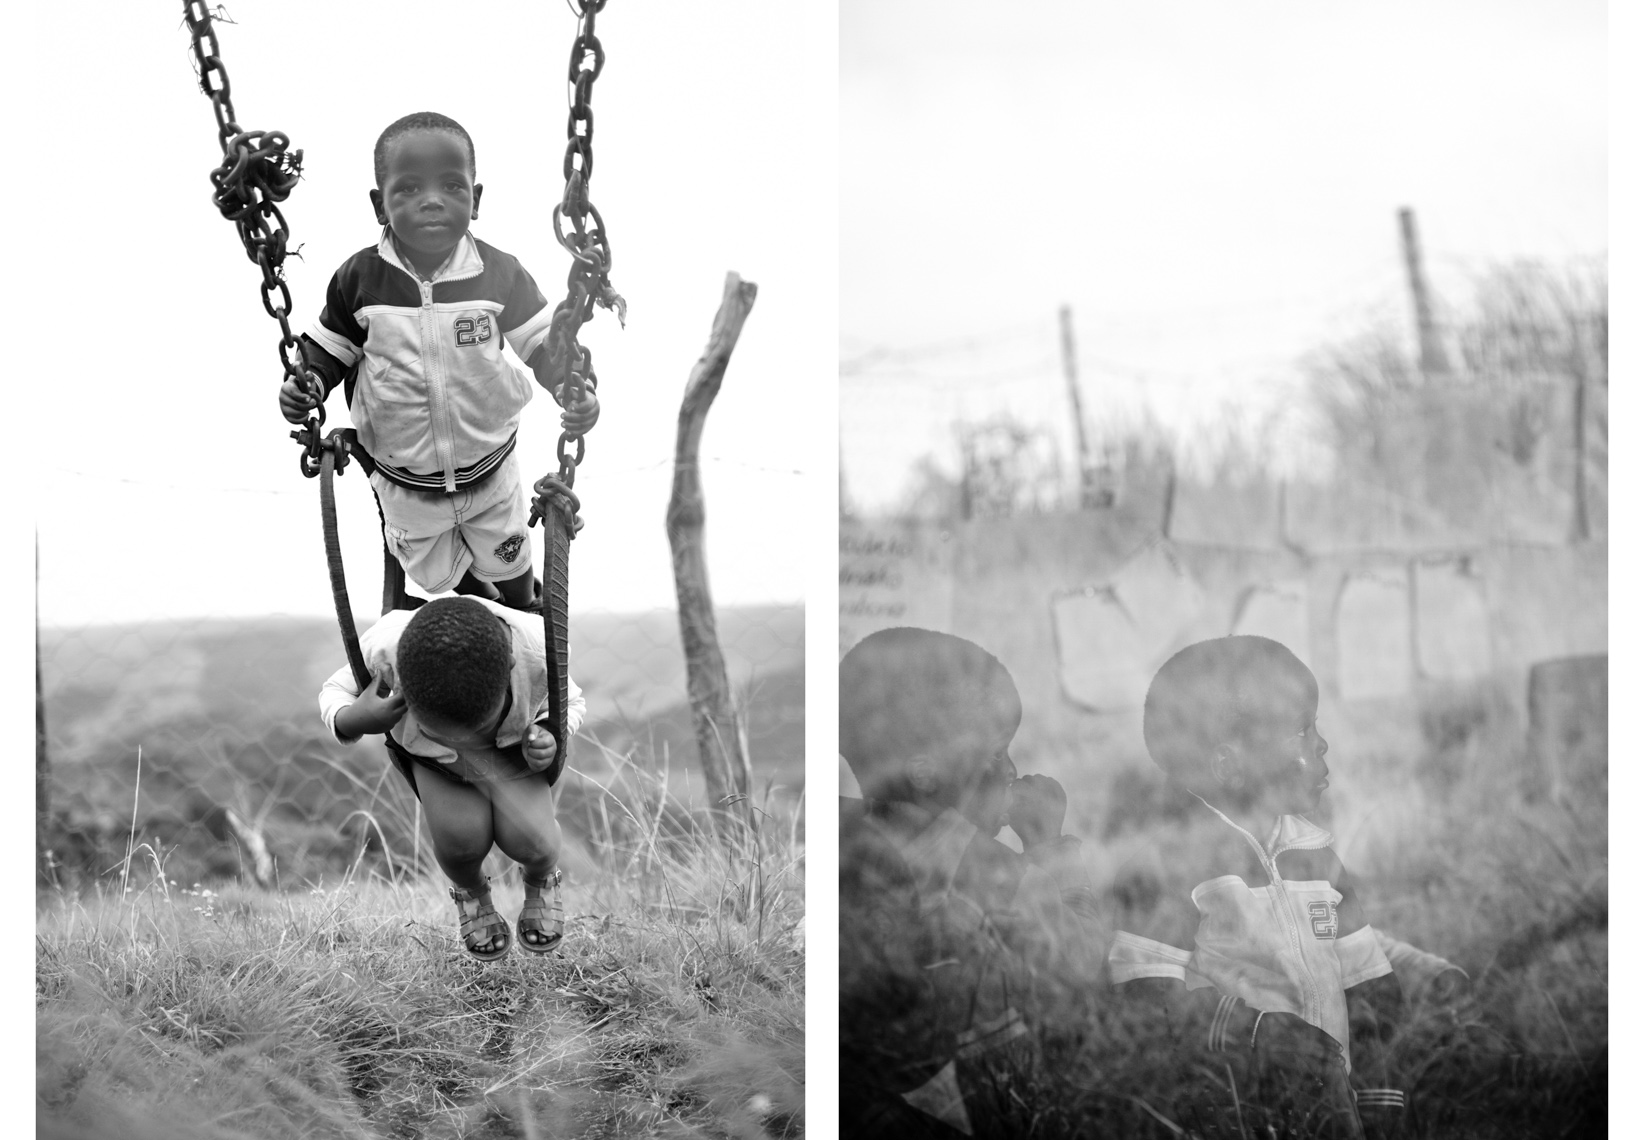 Children in the rural Transkei region of South Africa photograph by Forest Woodward